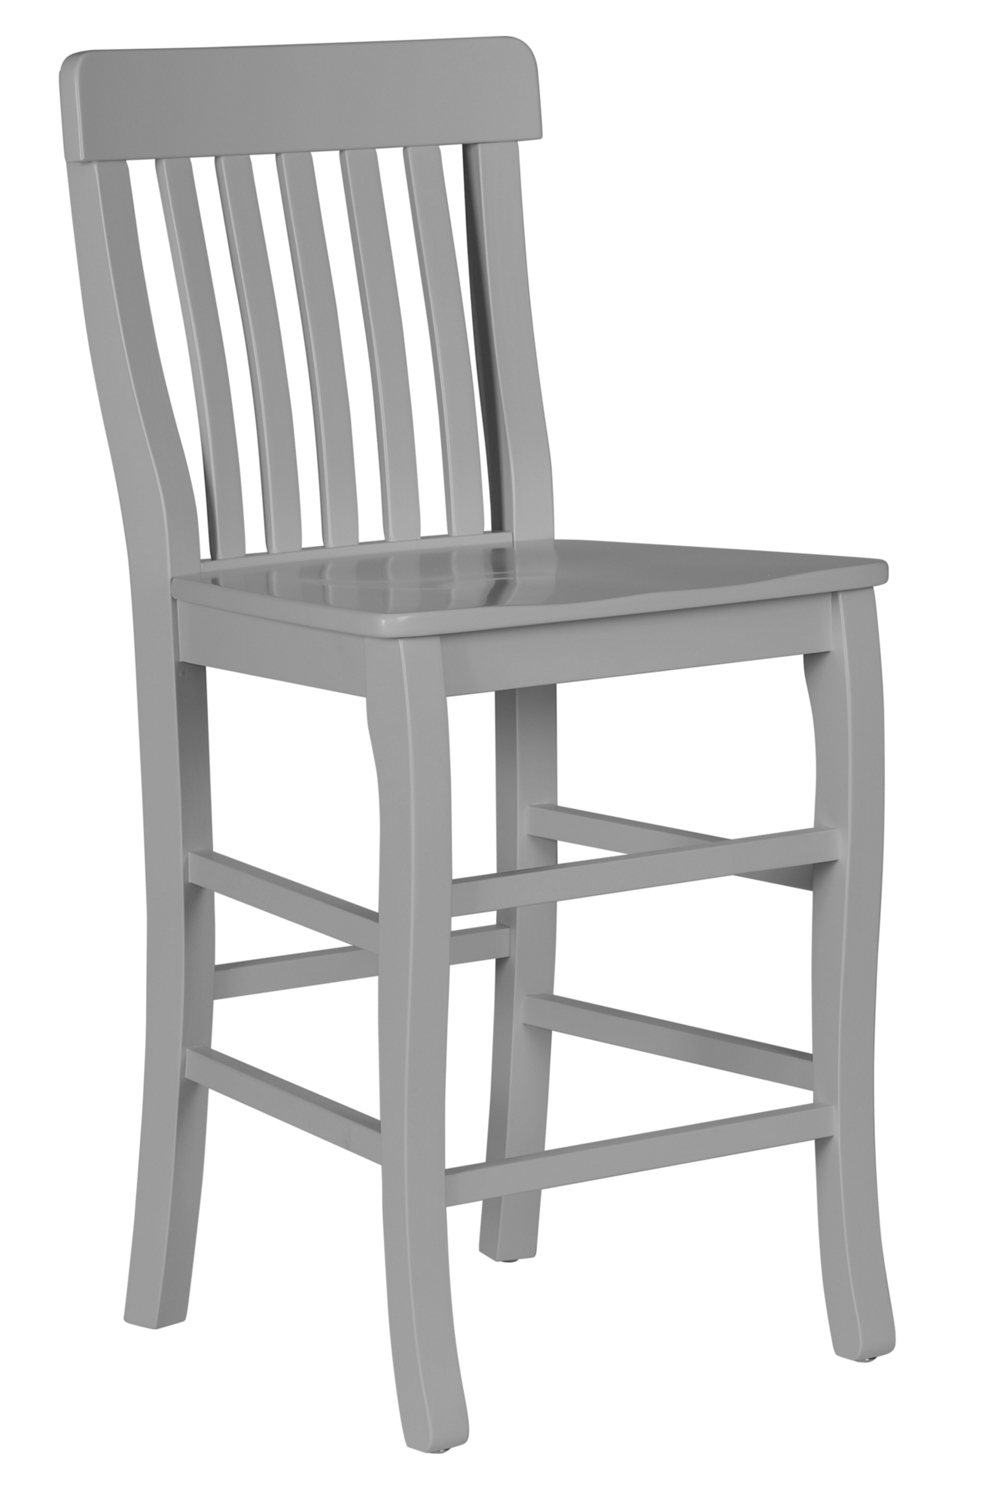 Cokie Counter Stool